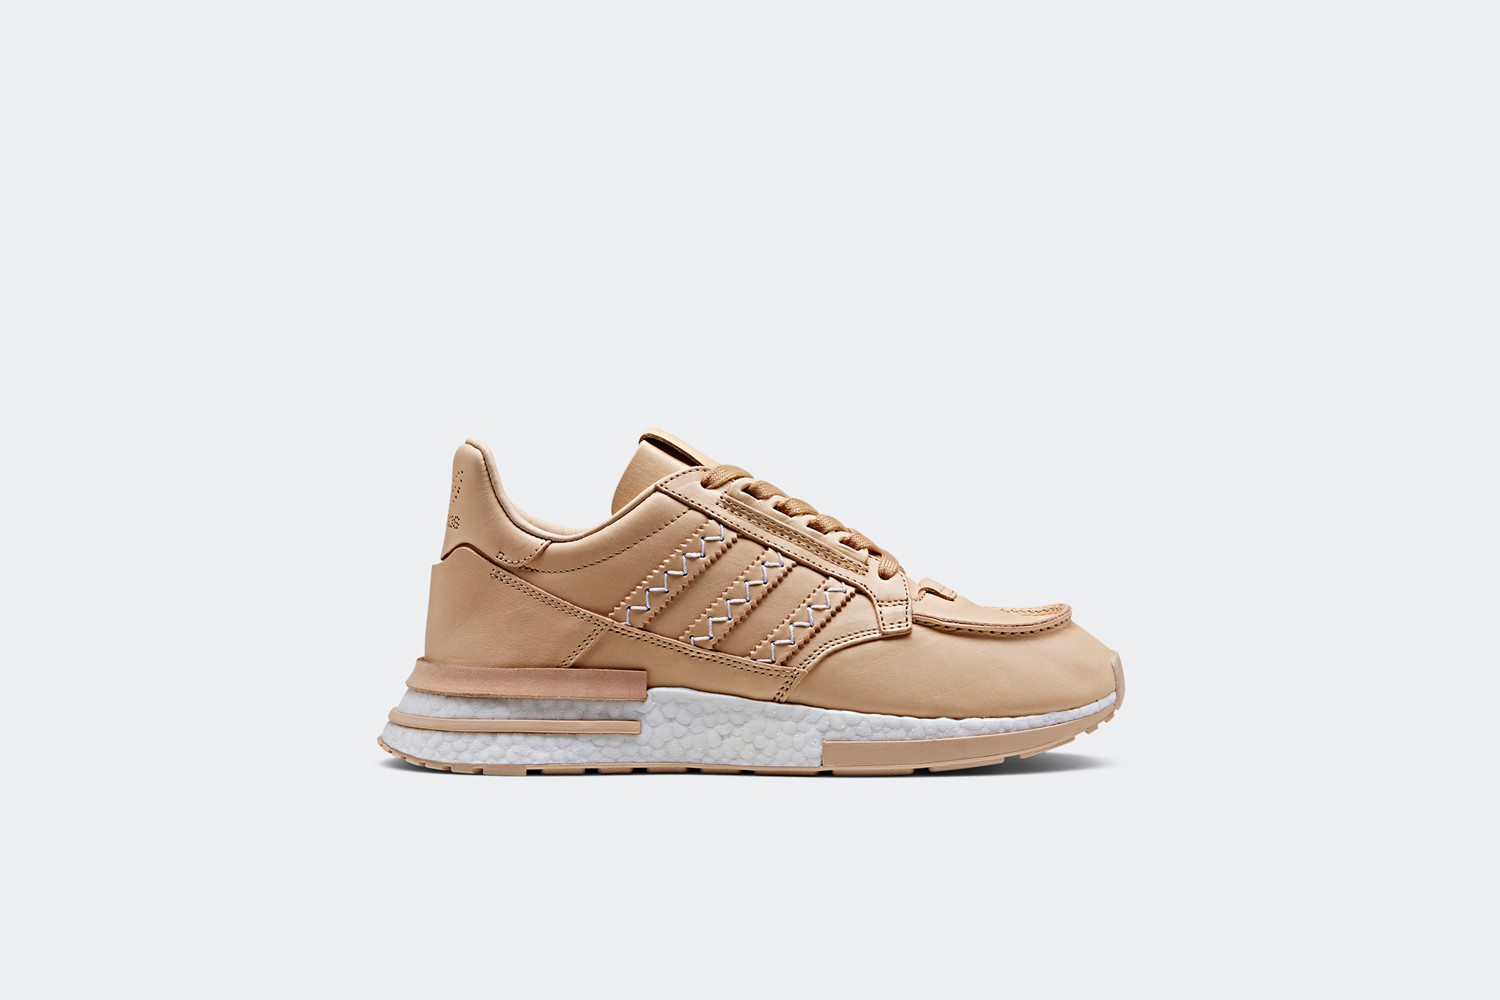 adidas-originals-x-hender-scheme-fall-winter-2018-collection-8